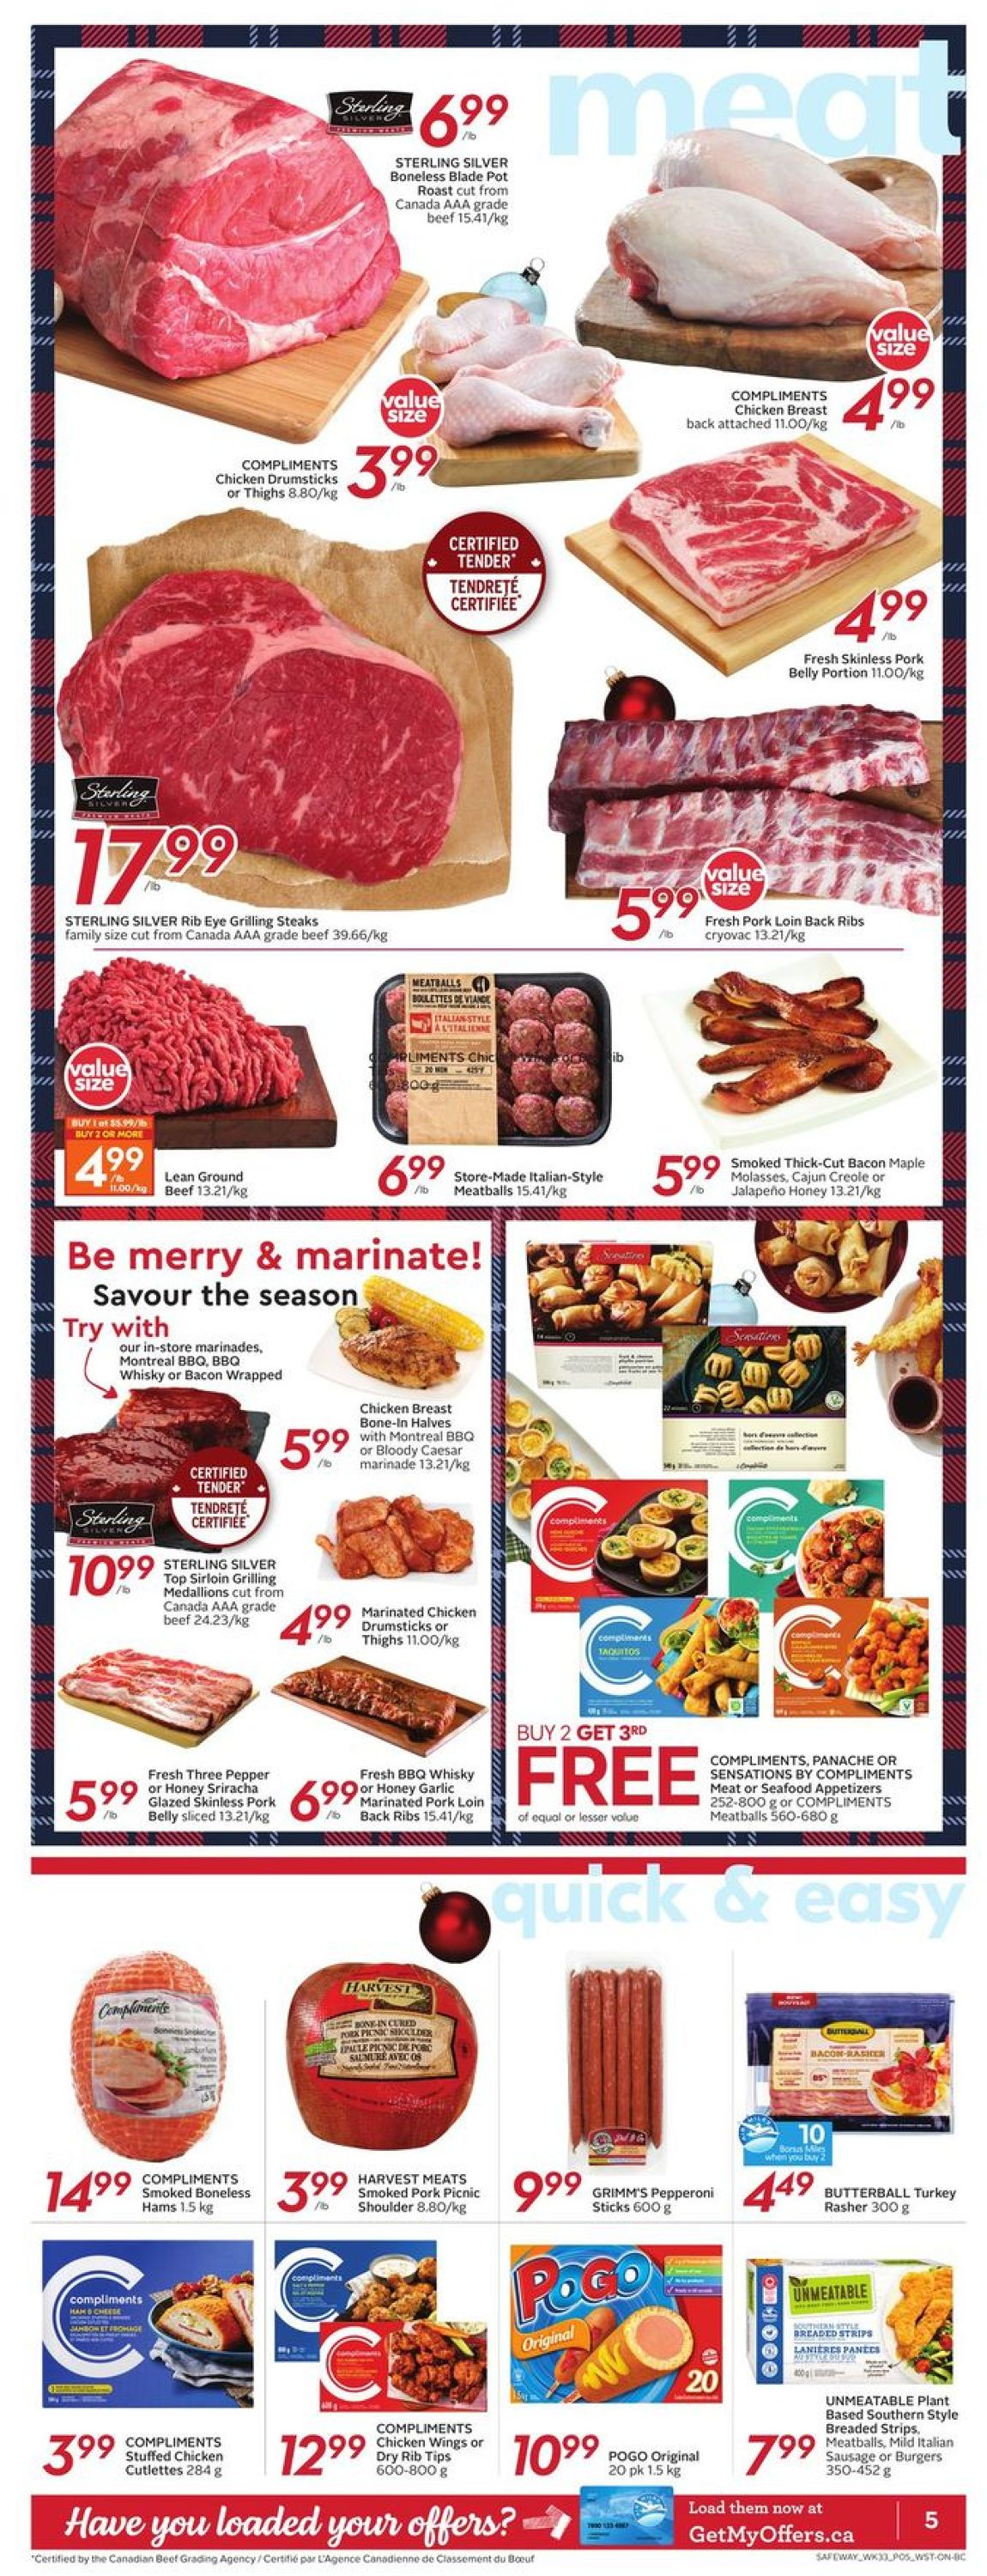 Safeway - Holiday 2020 Flyer - 12/10-12/16/2020 (Page 8)